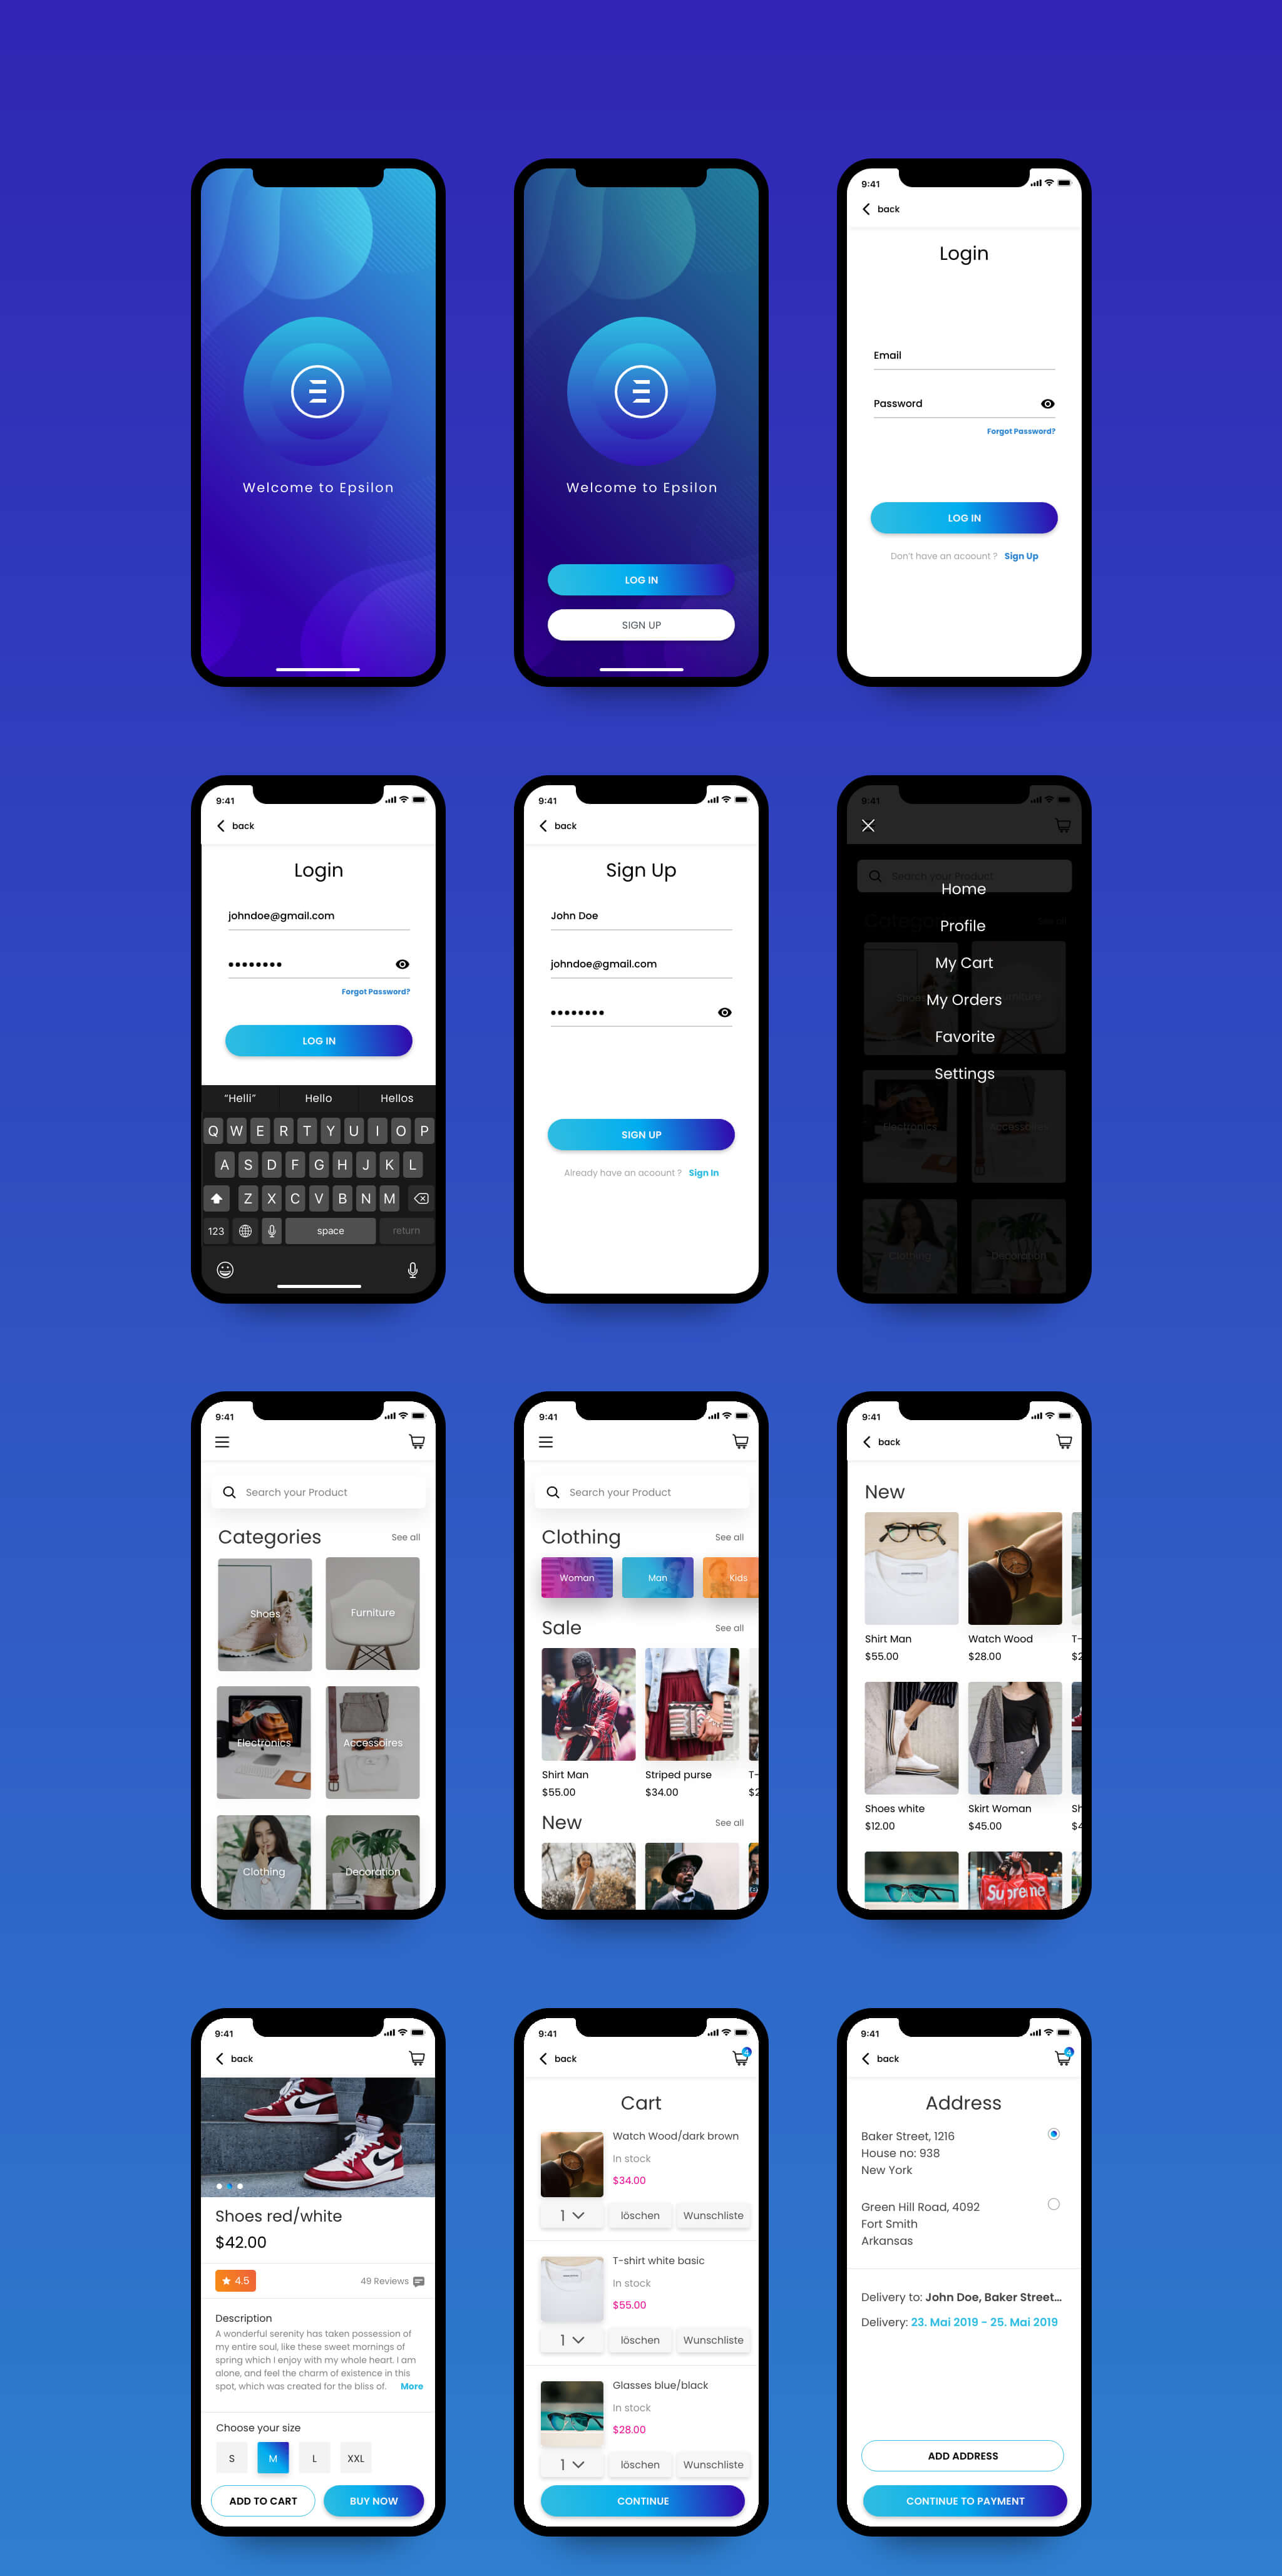 Preview of the App Design Screens